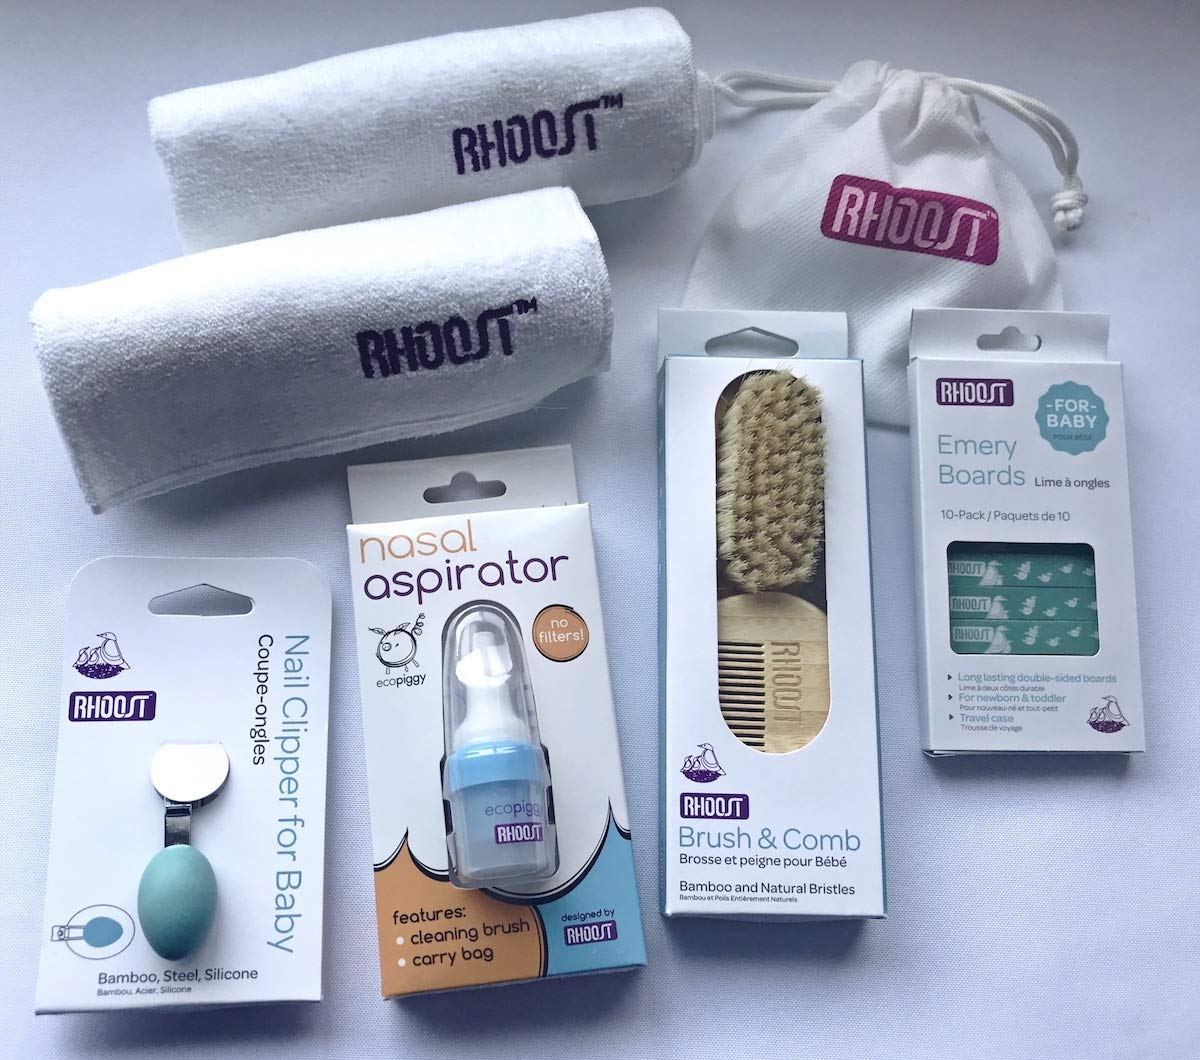 Rhoost Baby Grooming and Health Gift Set (19 pieces), Brush, Comb, Nail Clipper, Emery Boards, Cleaning Brush, Carry Bag, Nasal Aspirator, and Washcloths by Rhoost